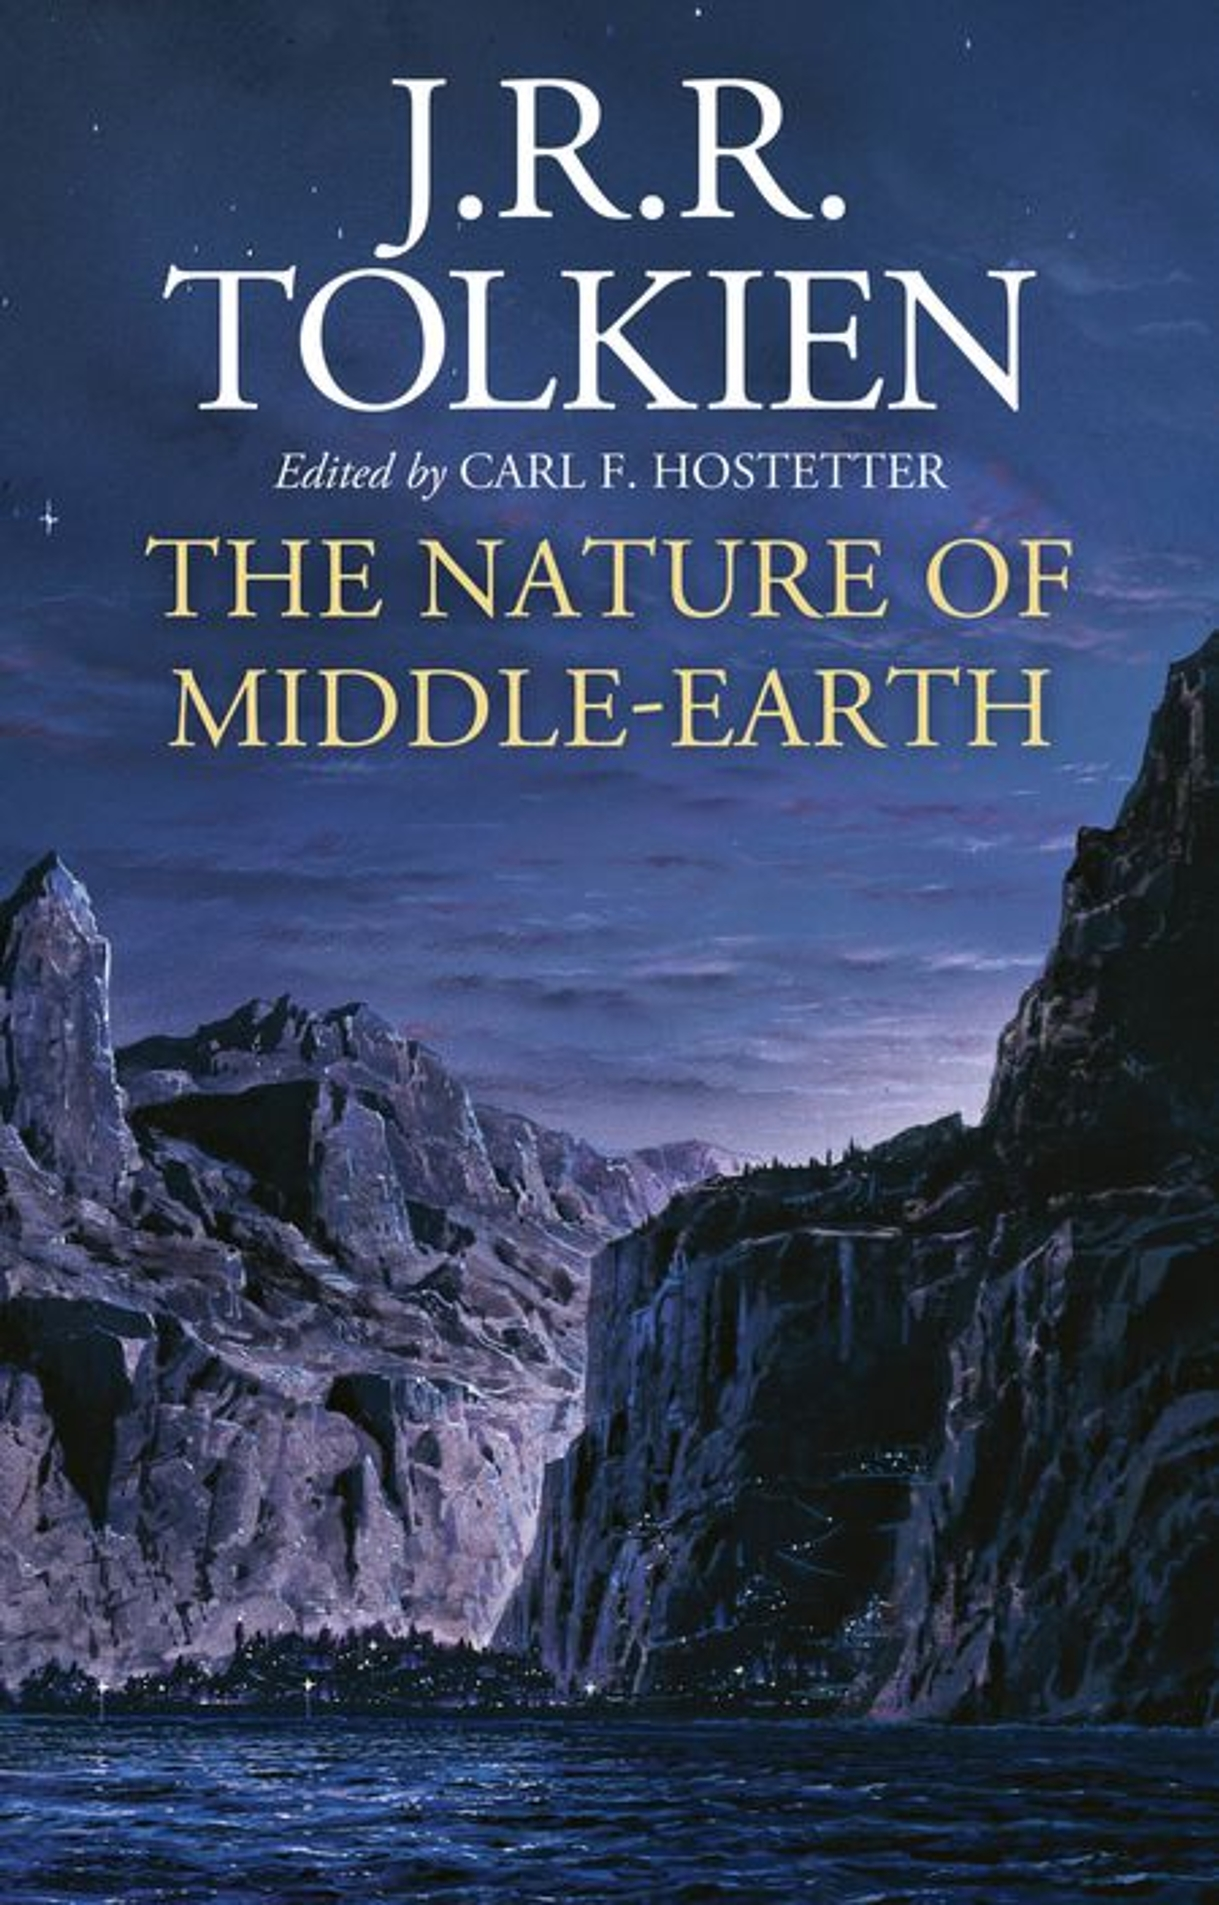 The Nature of Middle-earth: Late Writings on the Lands, Inhabitants, and Metaphysics of Middle-earth by J.R.R. Tolkien